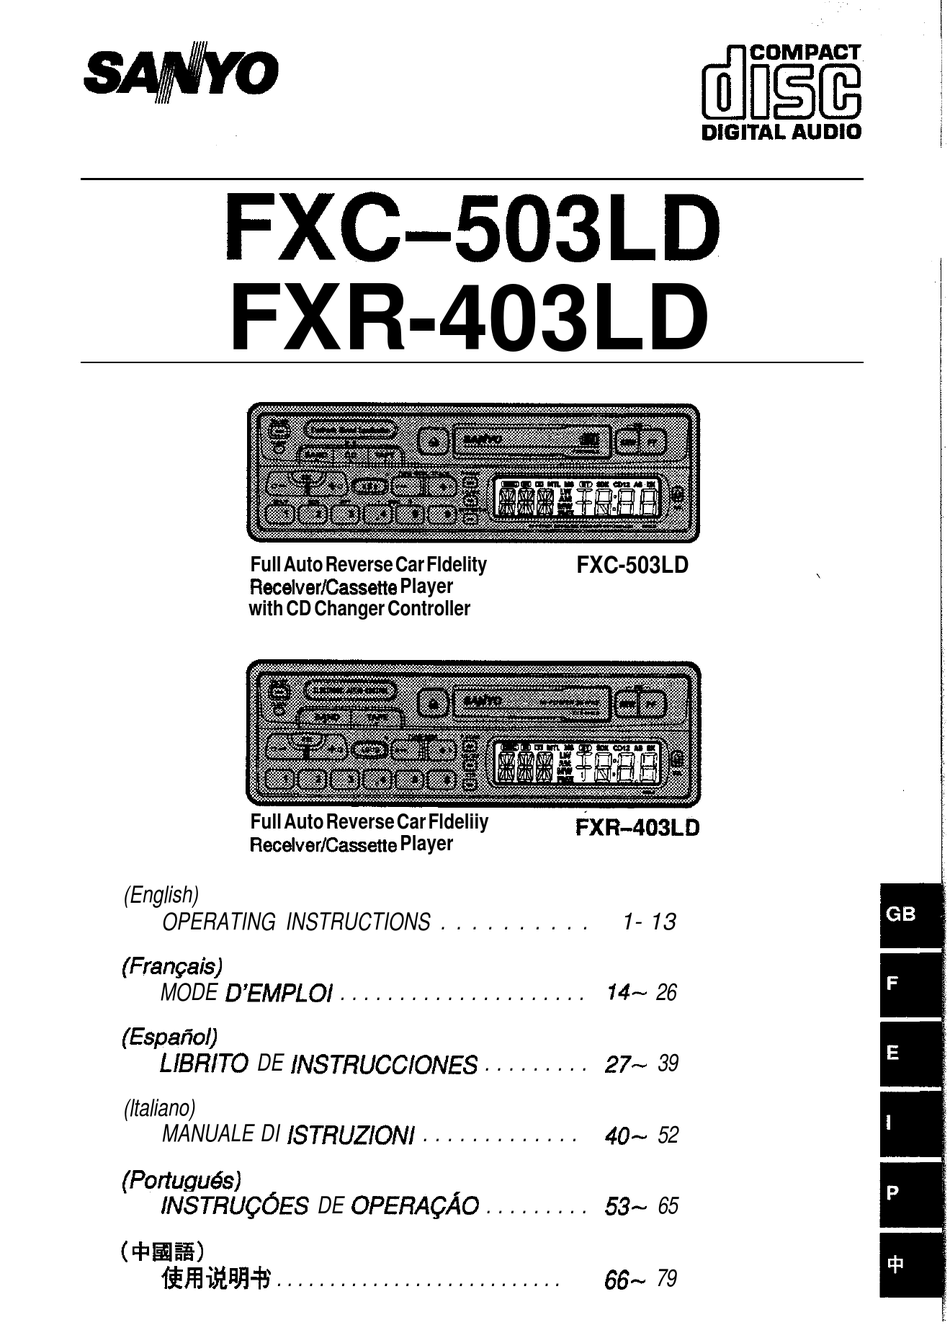 SANYO FXC-503LD OPERATING INSTRUCTIONS MANUAL Pdf Download